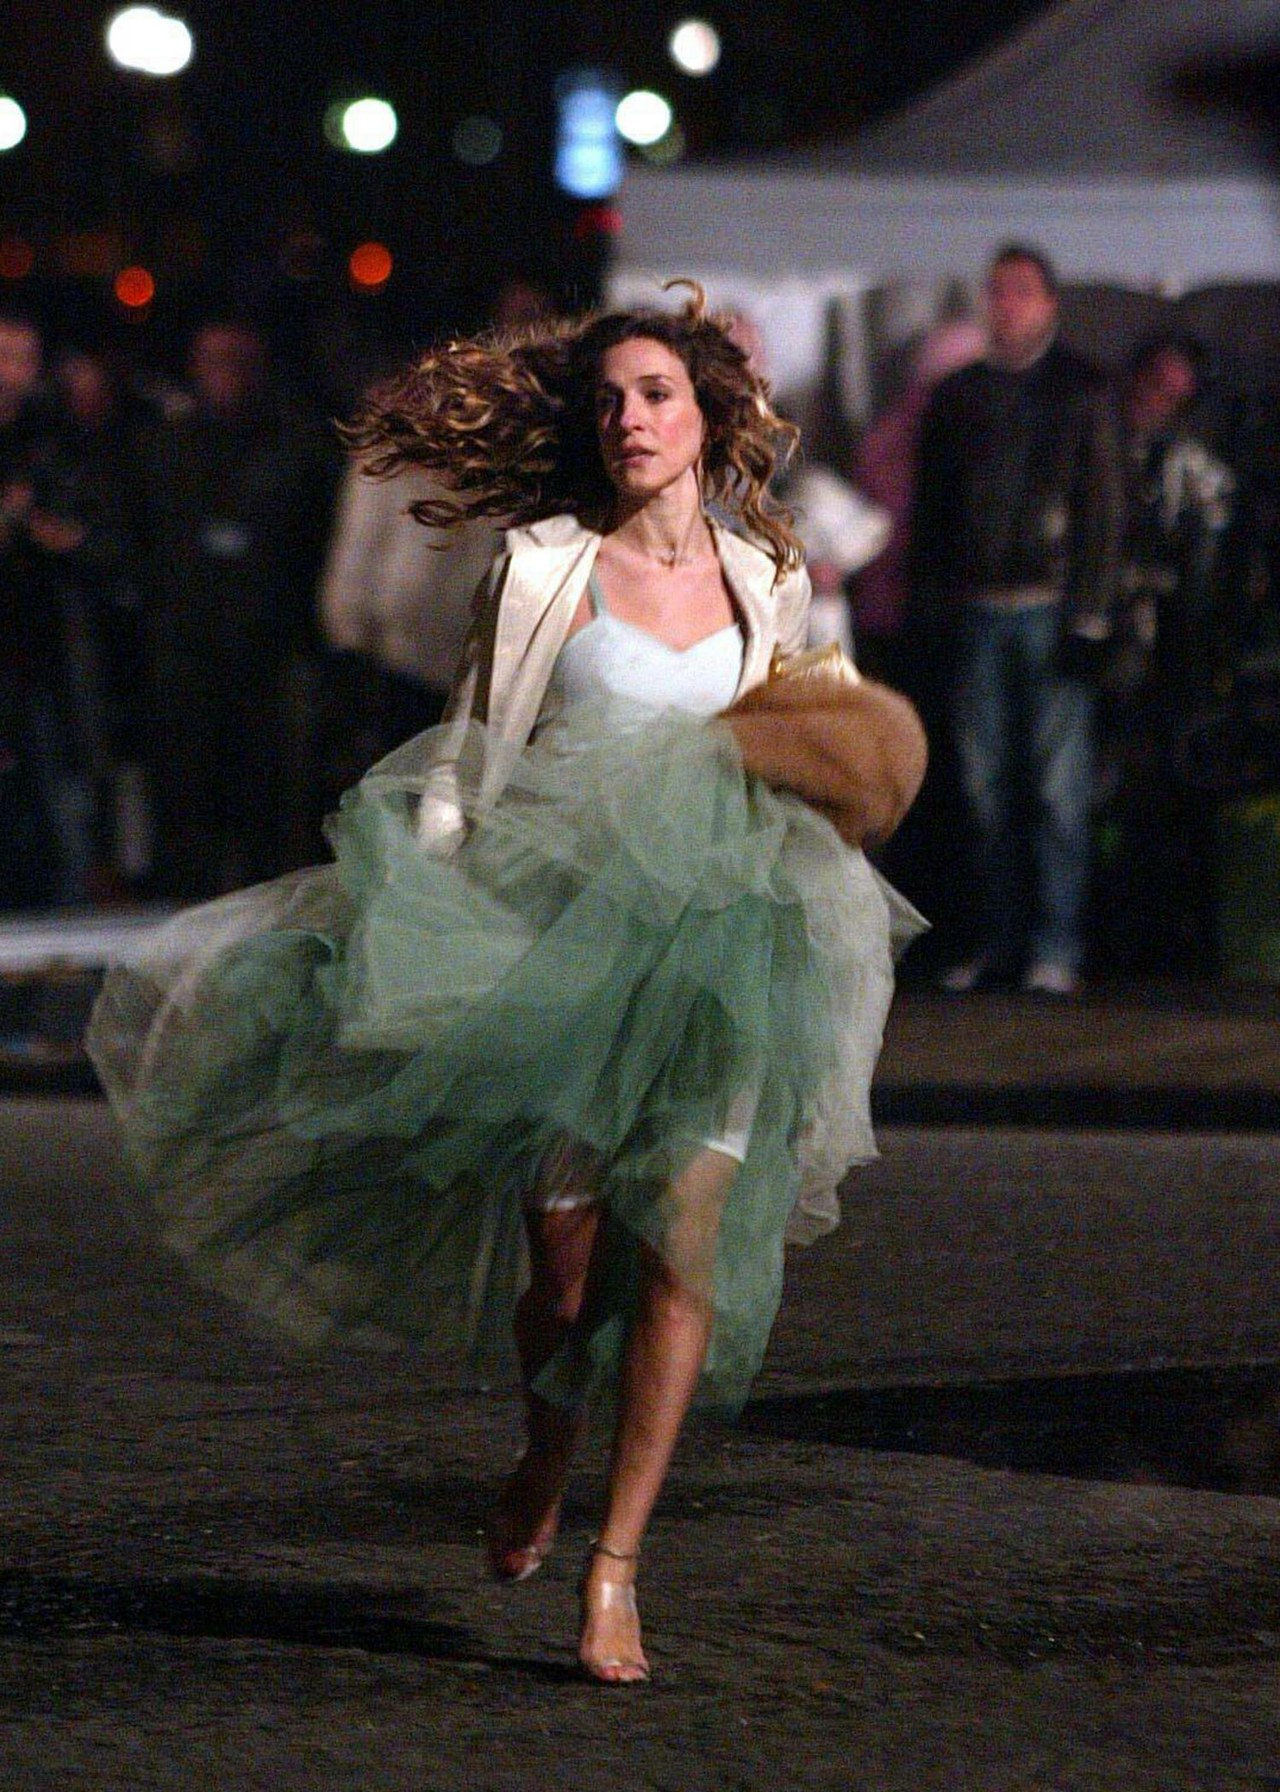 fashion-2016-03-carrie-bradshaw-running-in-tutu-in-paris-main